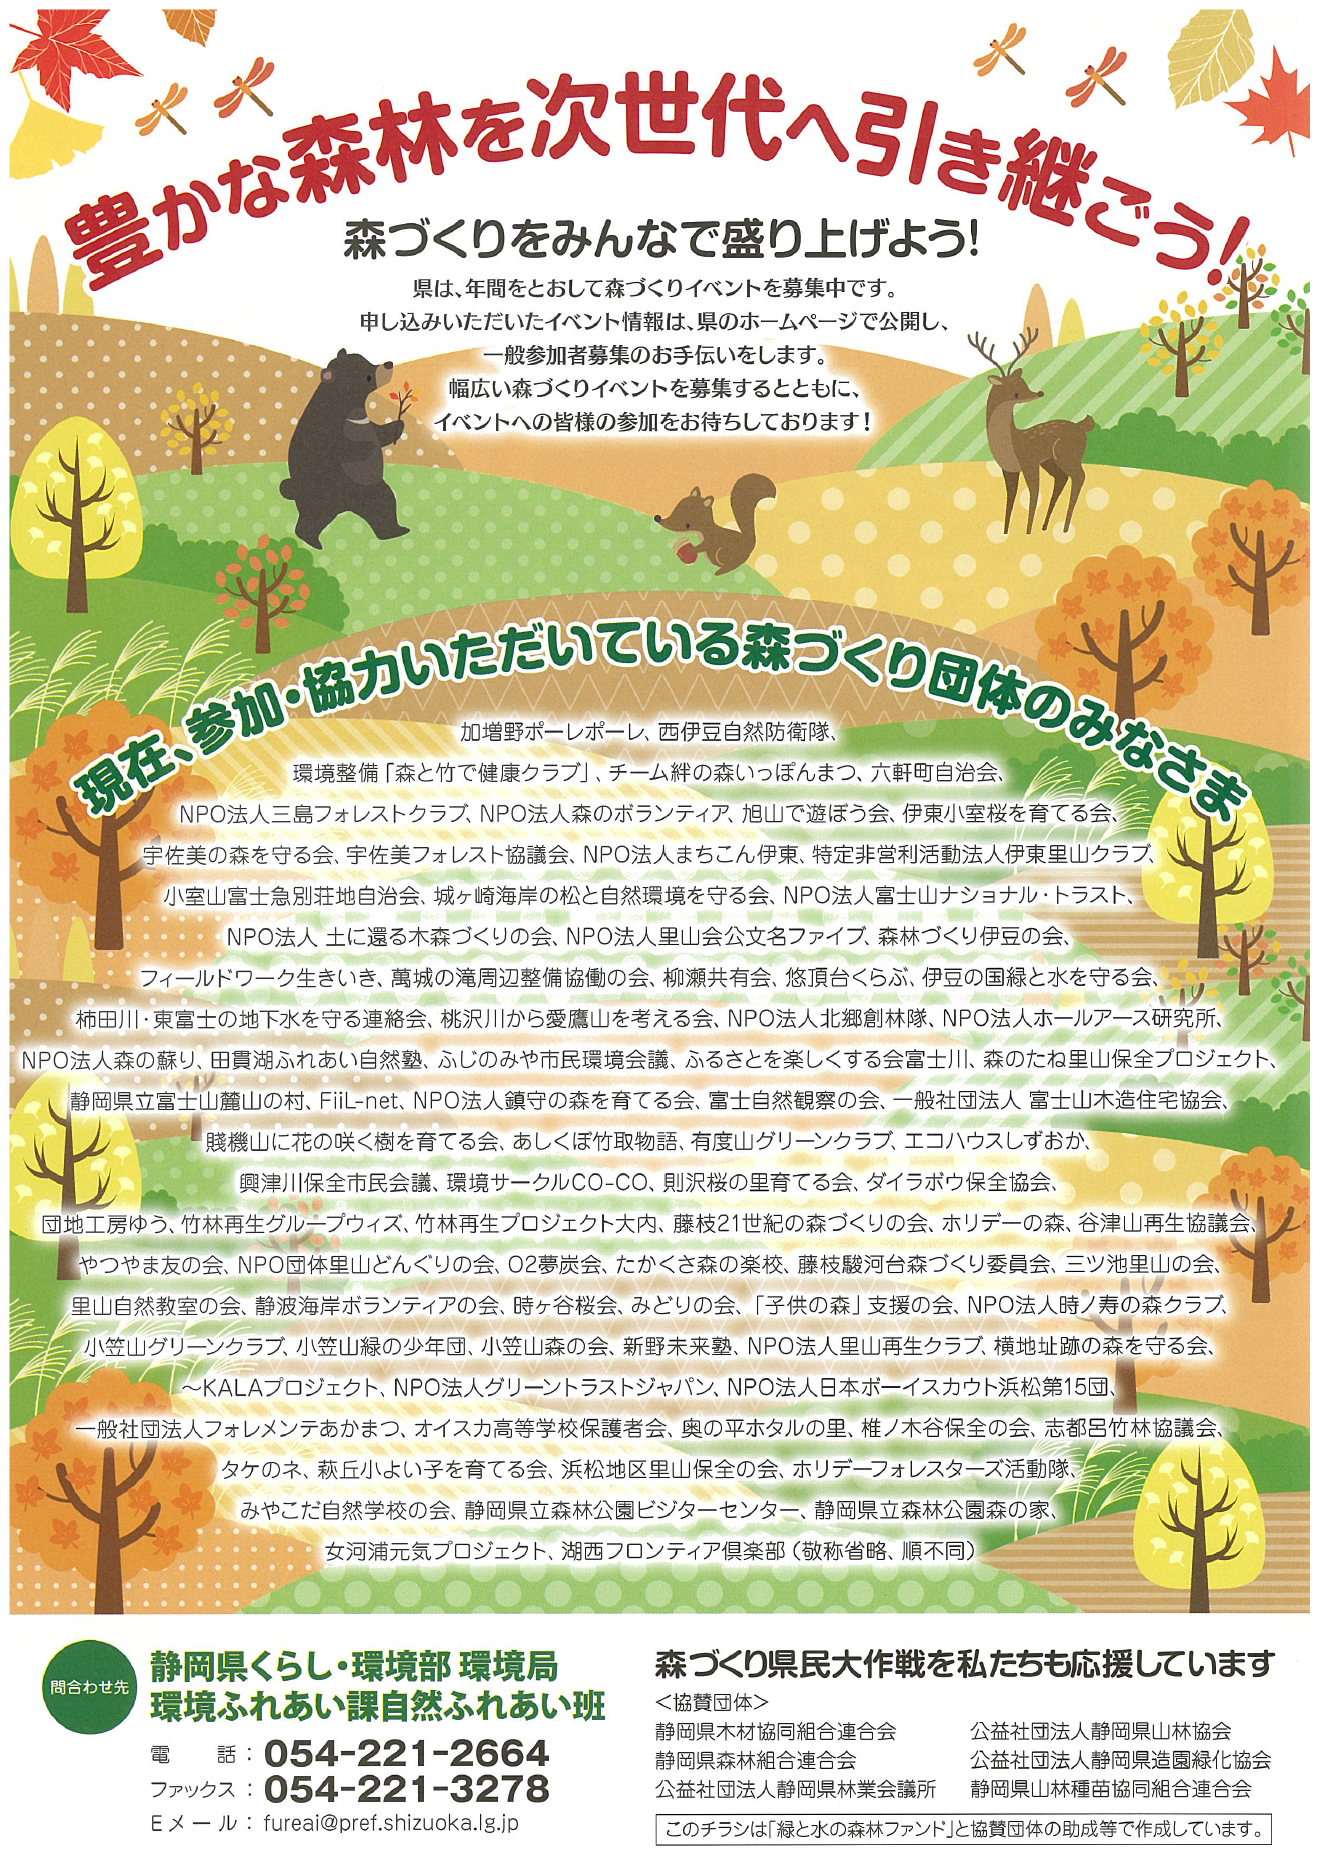 http://www.shizutan.jp/learning/2018/09/25/images/2.png